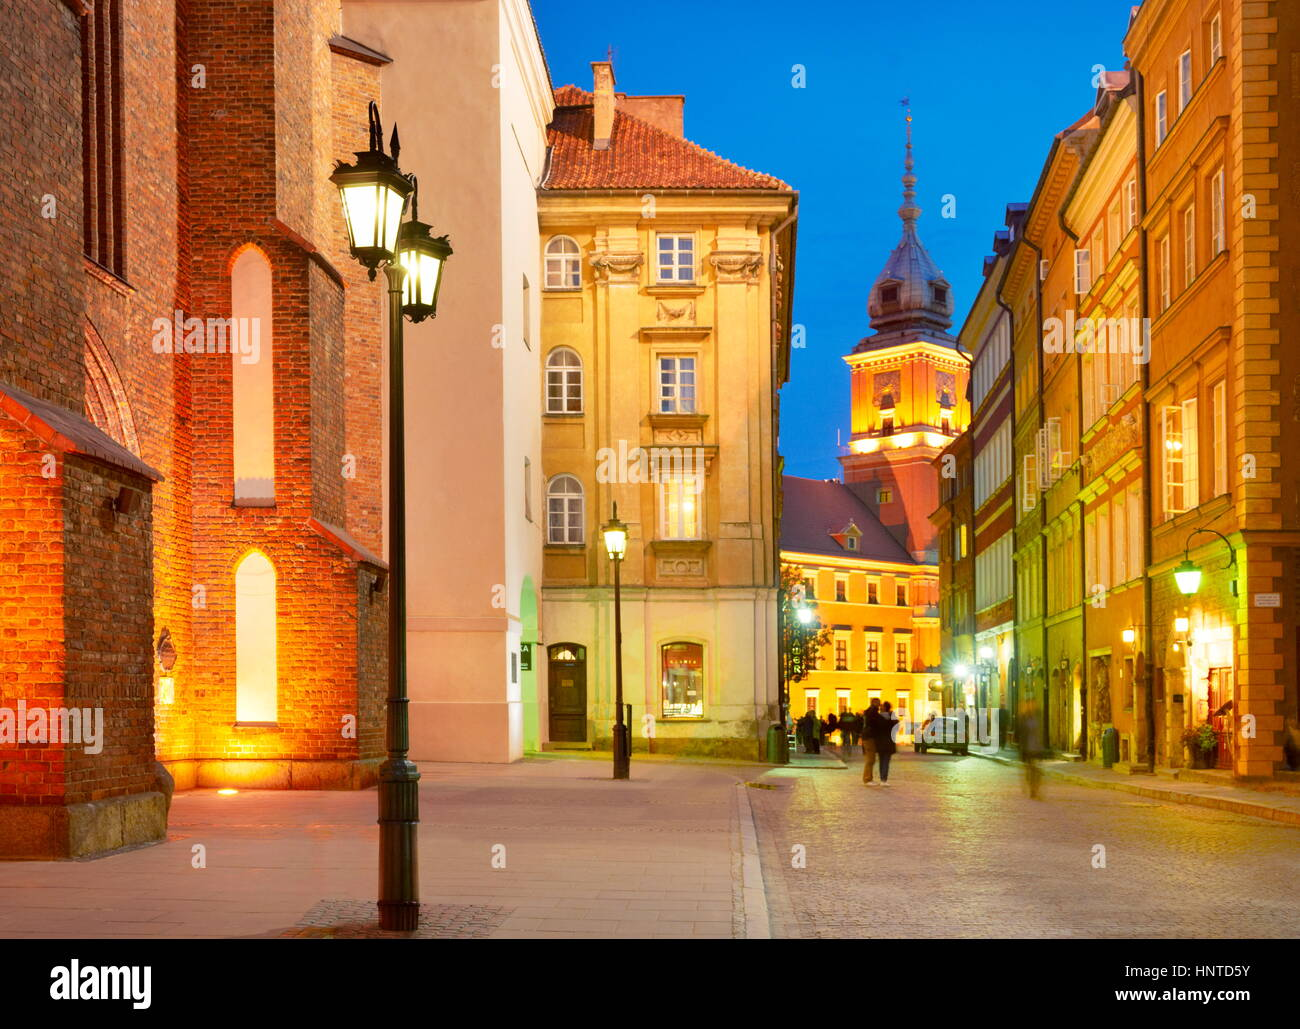 Warsaw Old Town at evening time, Poland, Europe - Stock Image